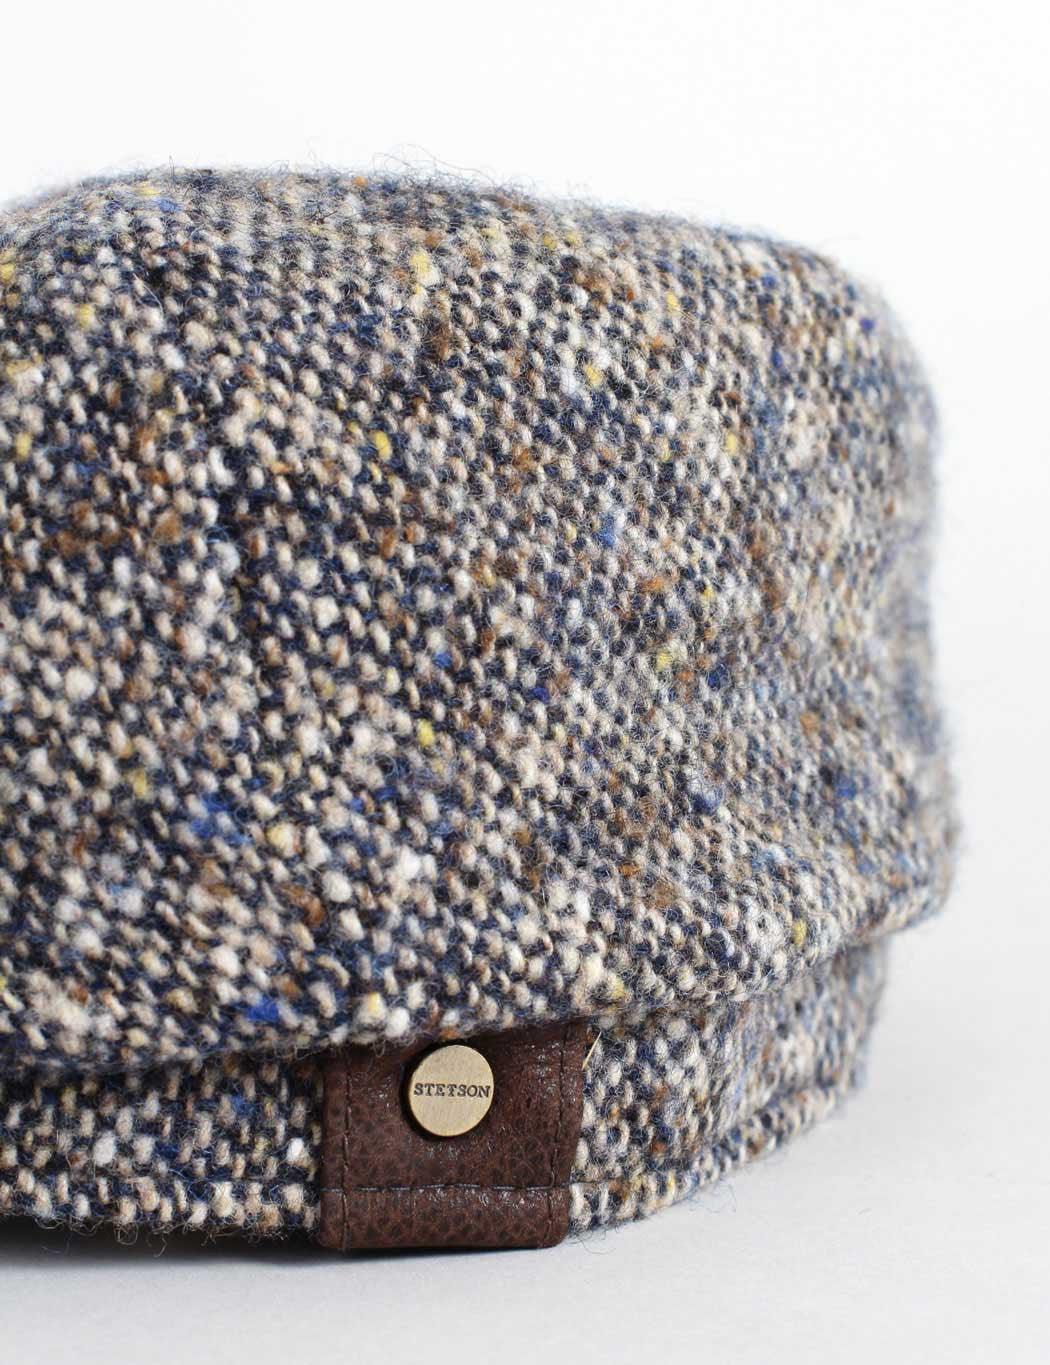 Stetson Hatteras Newsboy Cap - Brown/Blue Donegal